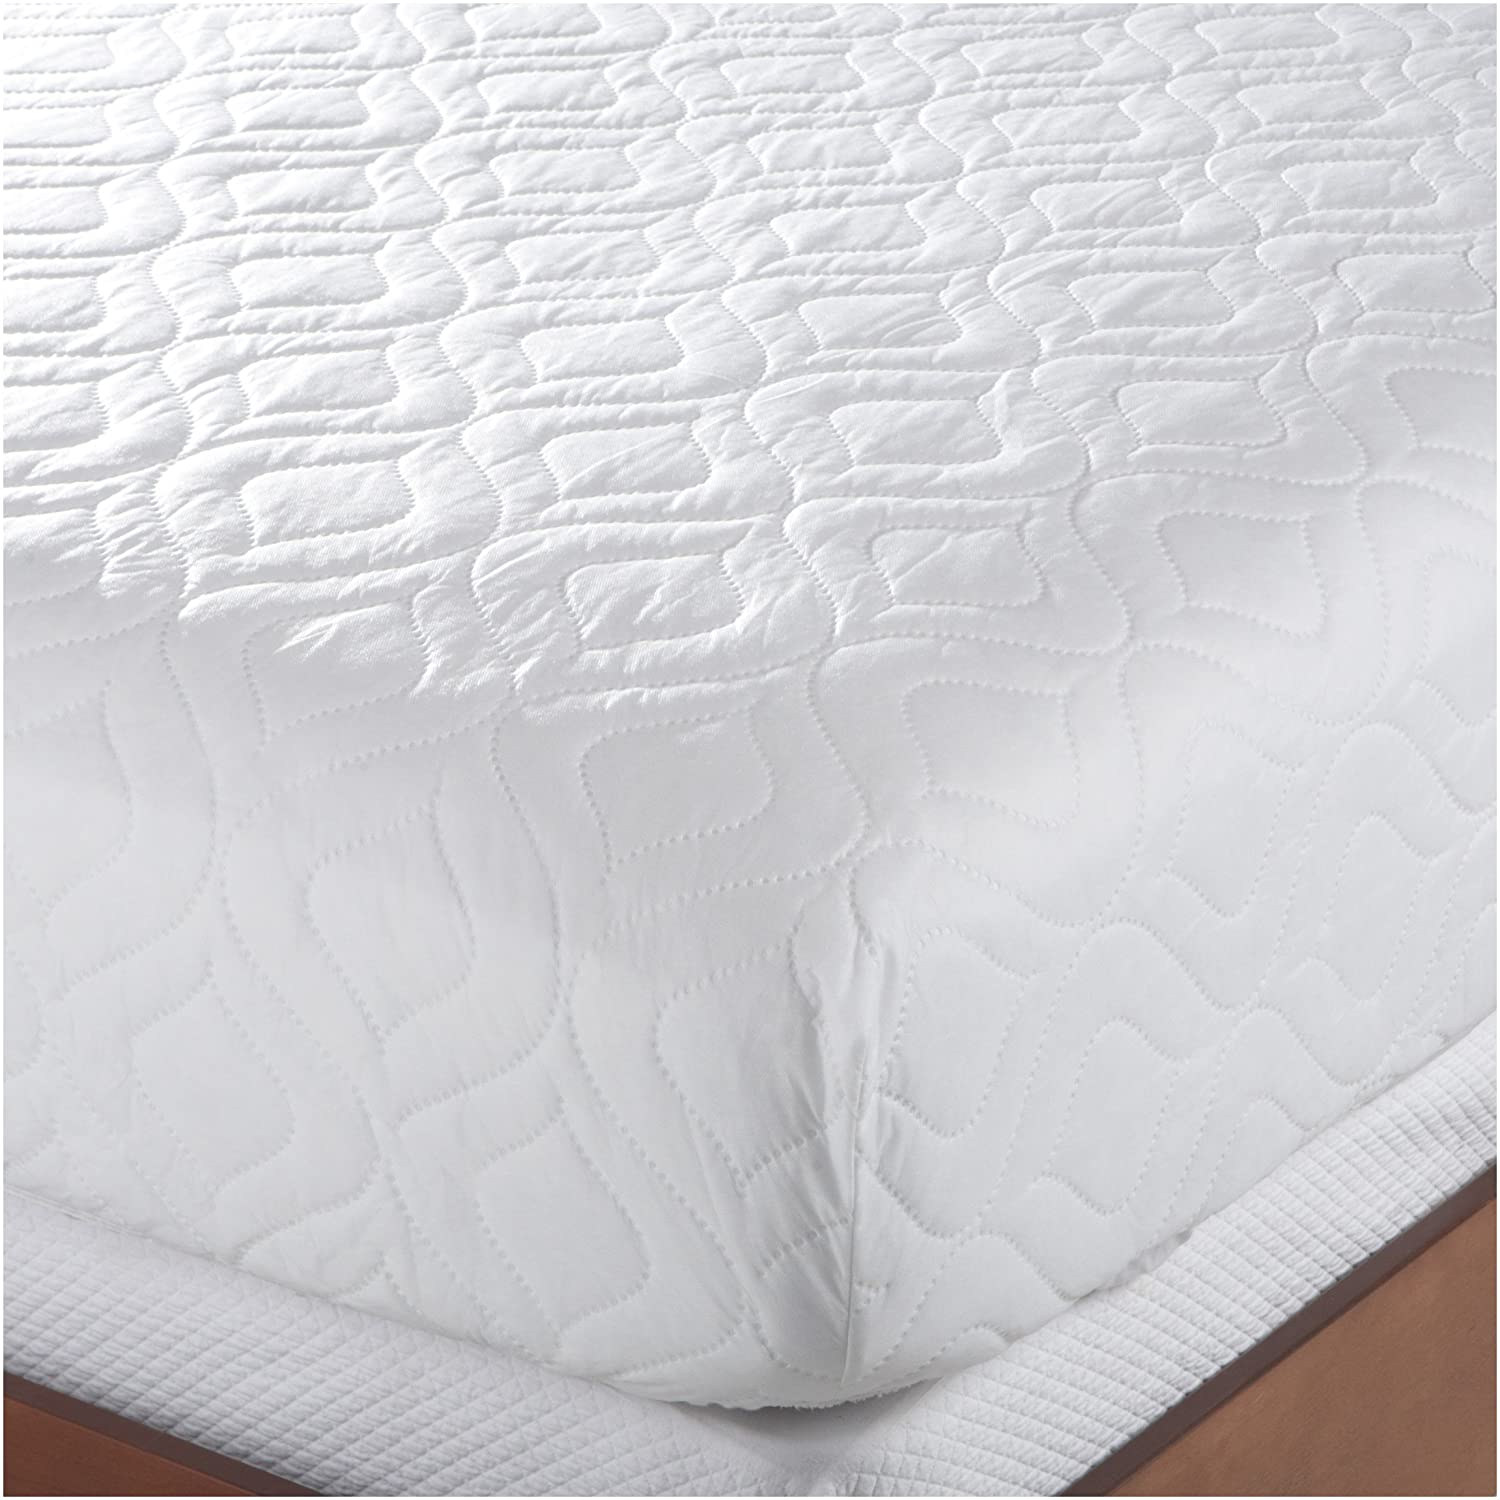 walmart pillow dream product reviews spring top mattress multiple slumber topper com sizes